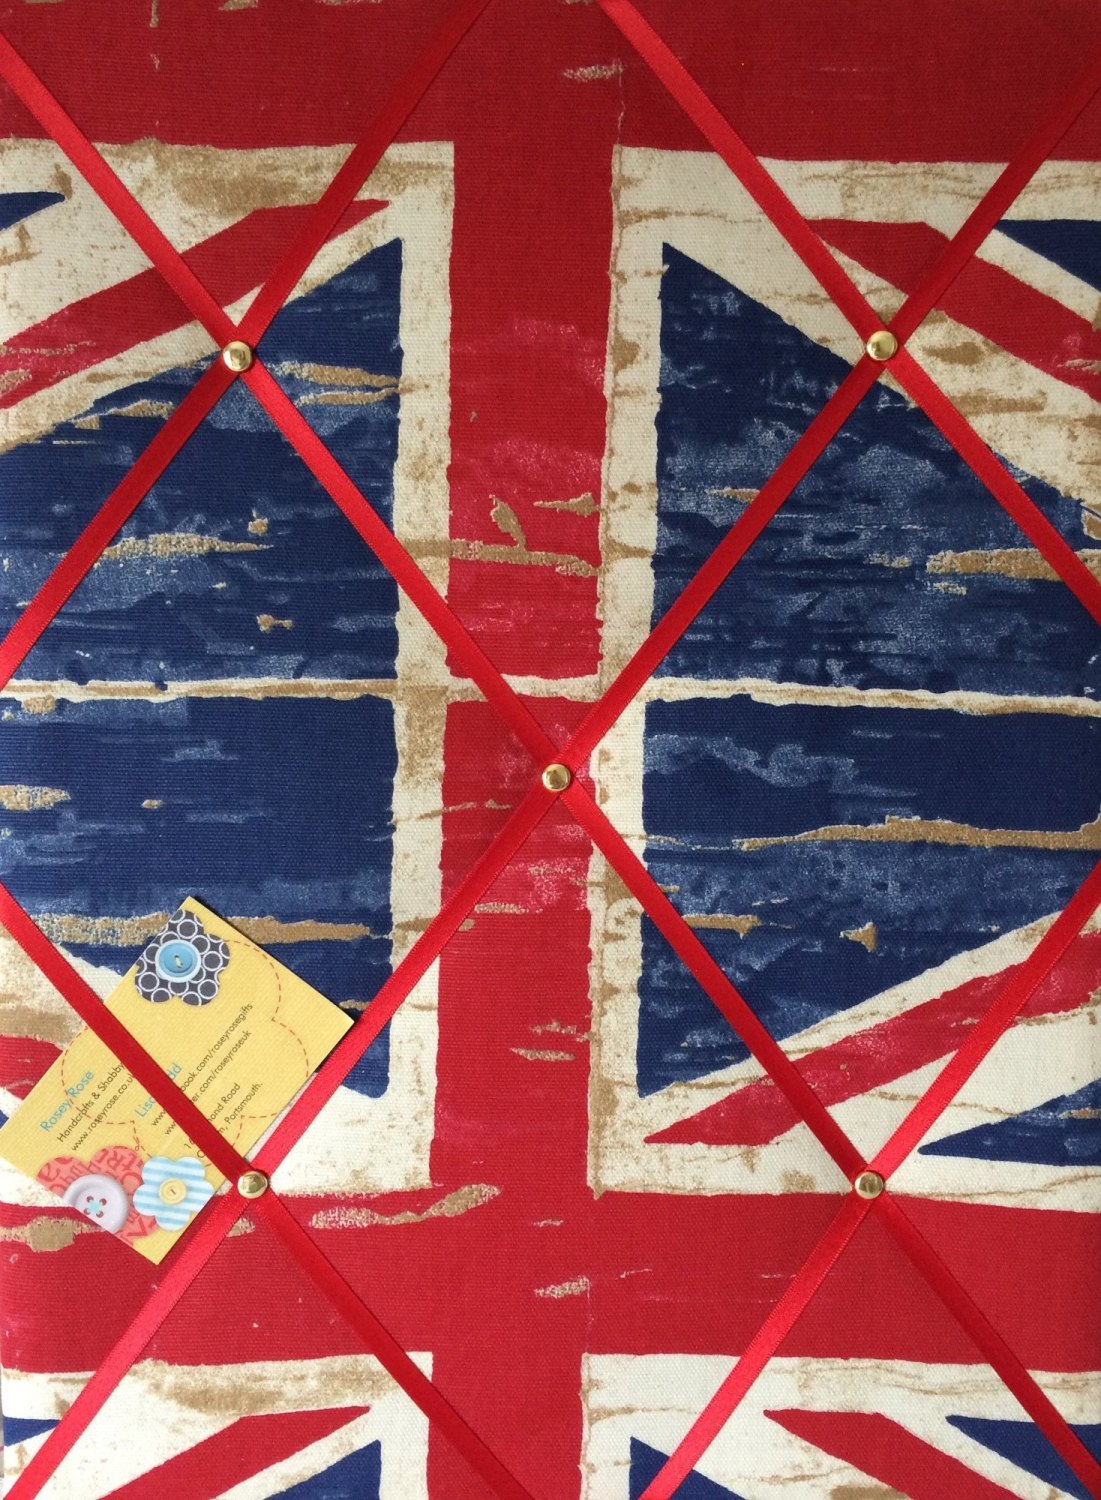 Medium 40x30cm Prestigious Union Jack England Flag Hand Crafted Fabric Noti